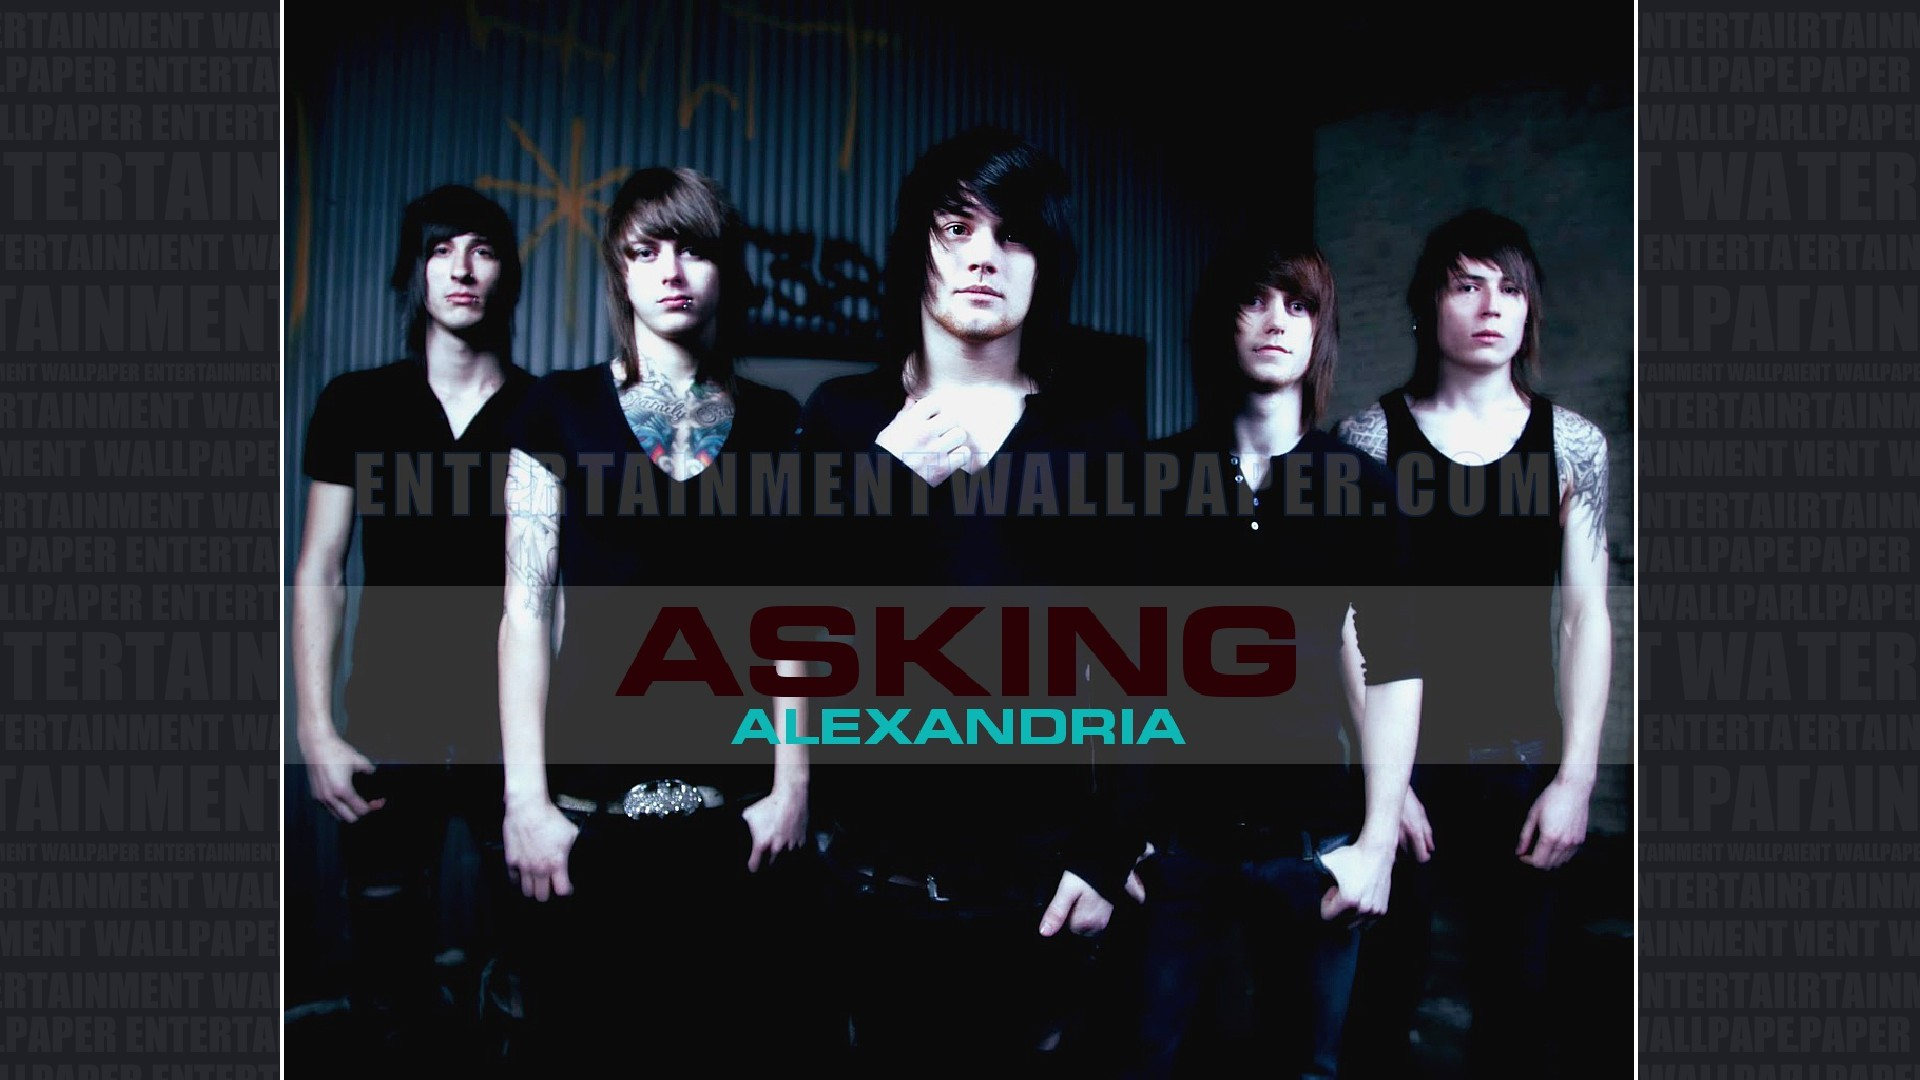 asking alexandria wallpaper hd lilzeu tattoo de picture 1920x1080